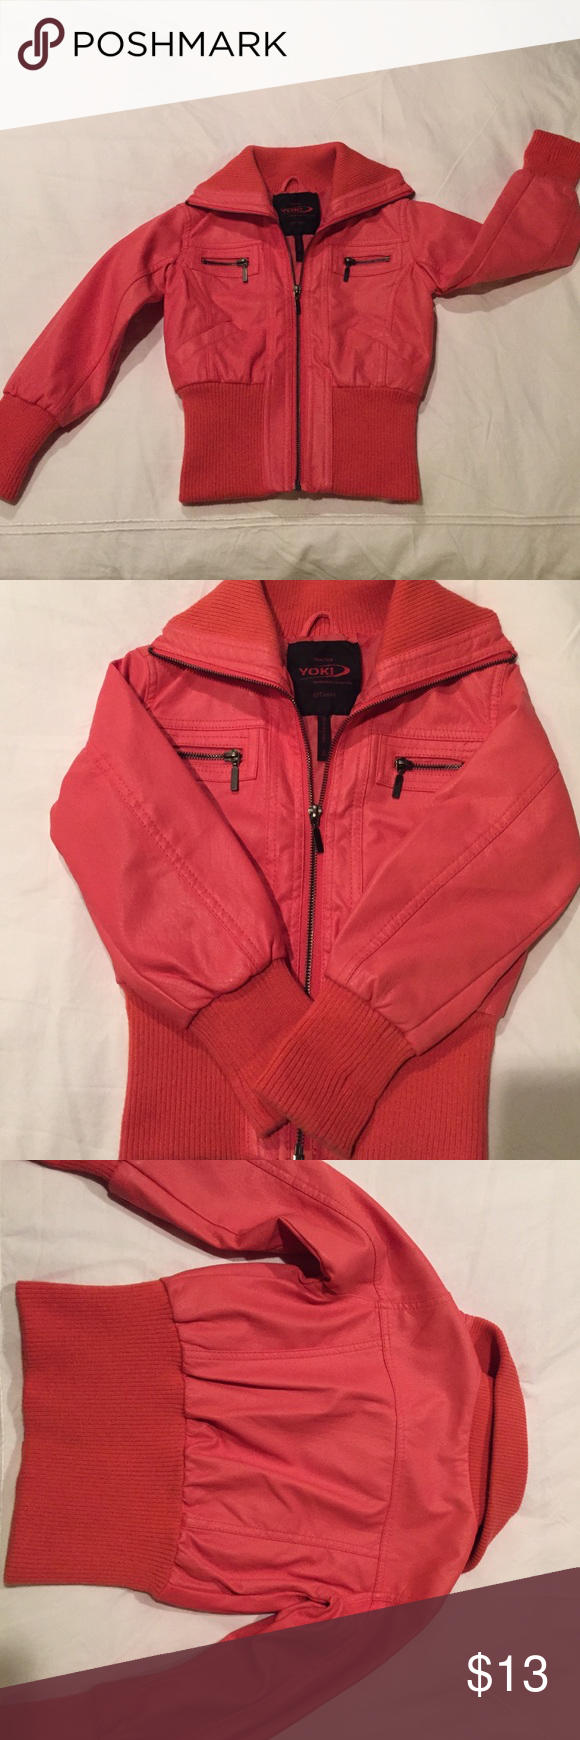 Ny Yoki Outerwear Collection Faux Leather Jacket New York Yoki Outerwear Collection Faux Leather Jacket Coral Col Faux Leather Jackets Clothes Design Jackets [ 1740 x 580 Pixel ]